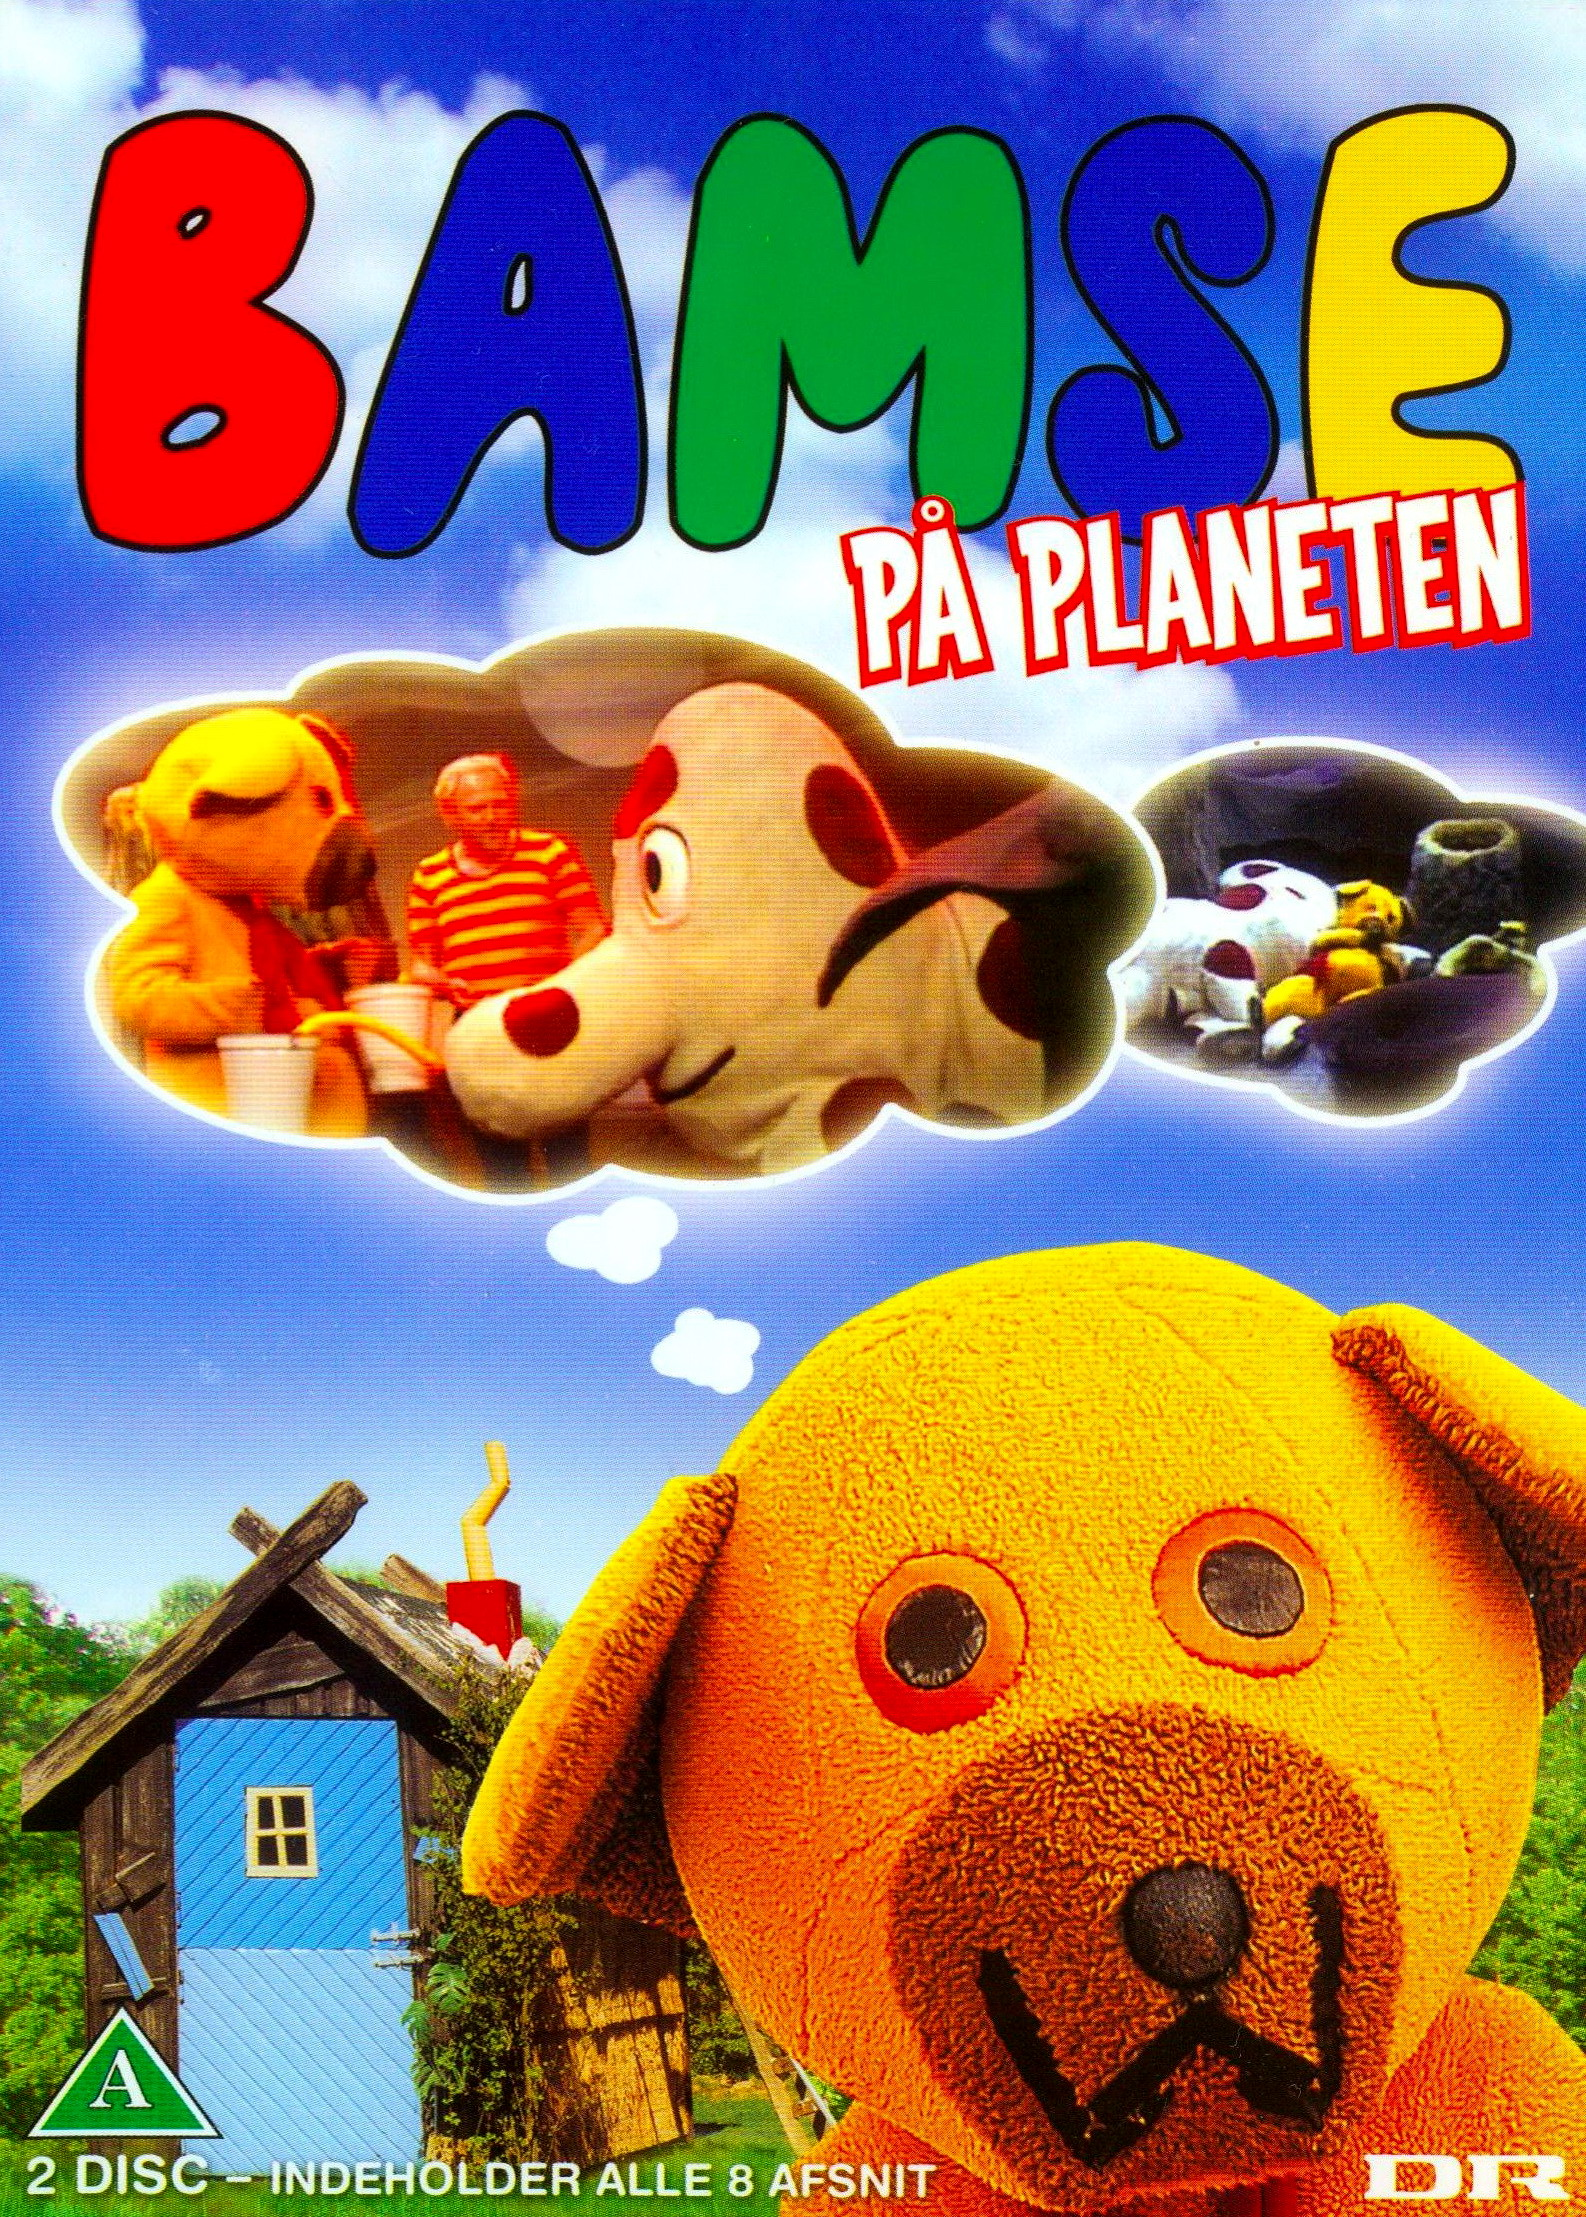 Fjernsyn for dyr - Bamse pa planeten movie